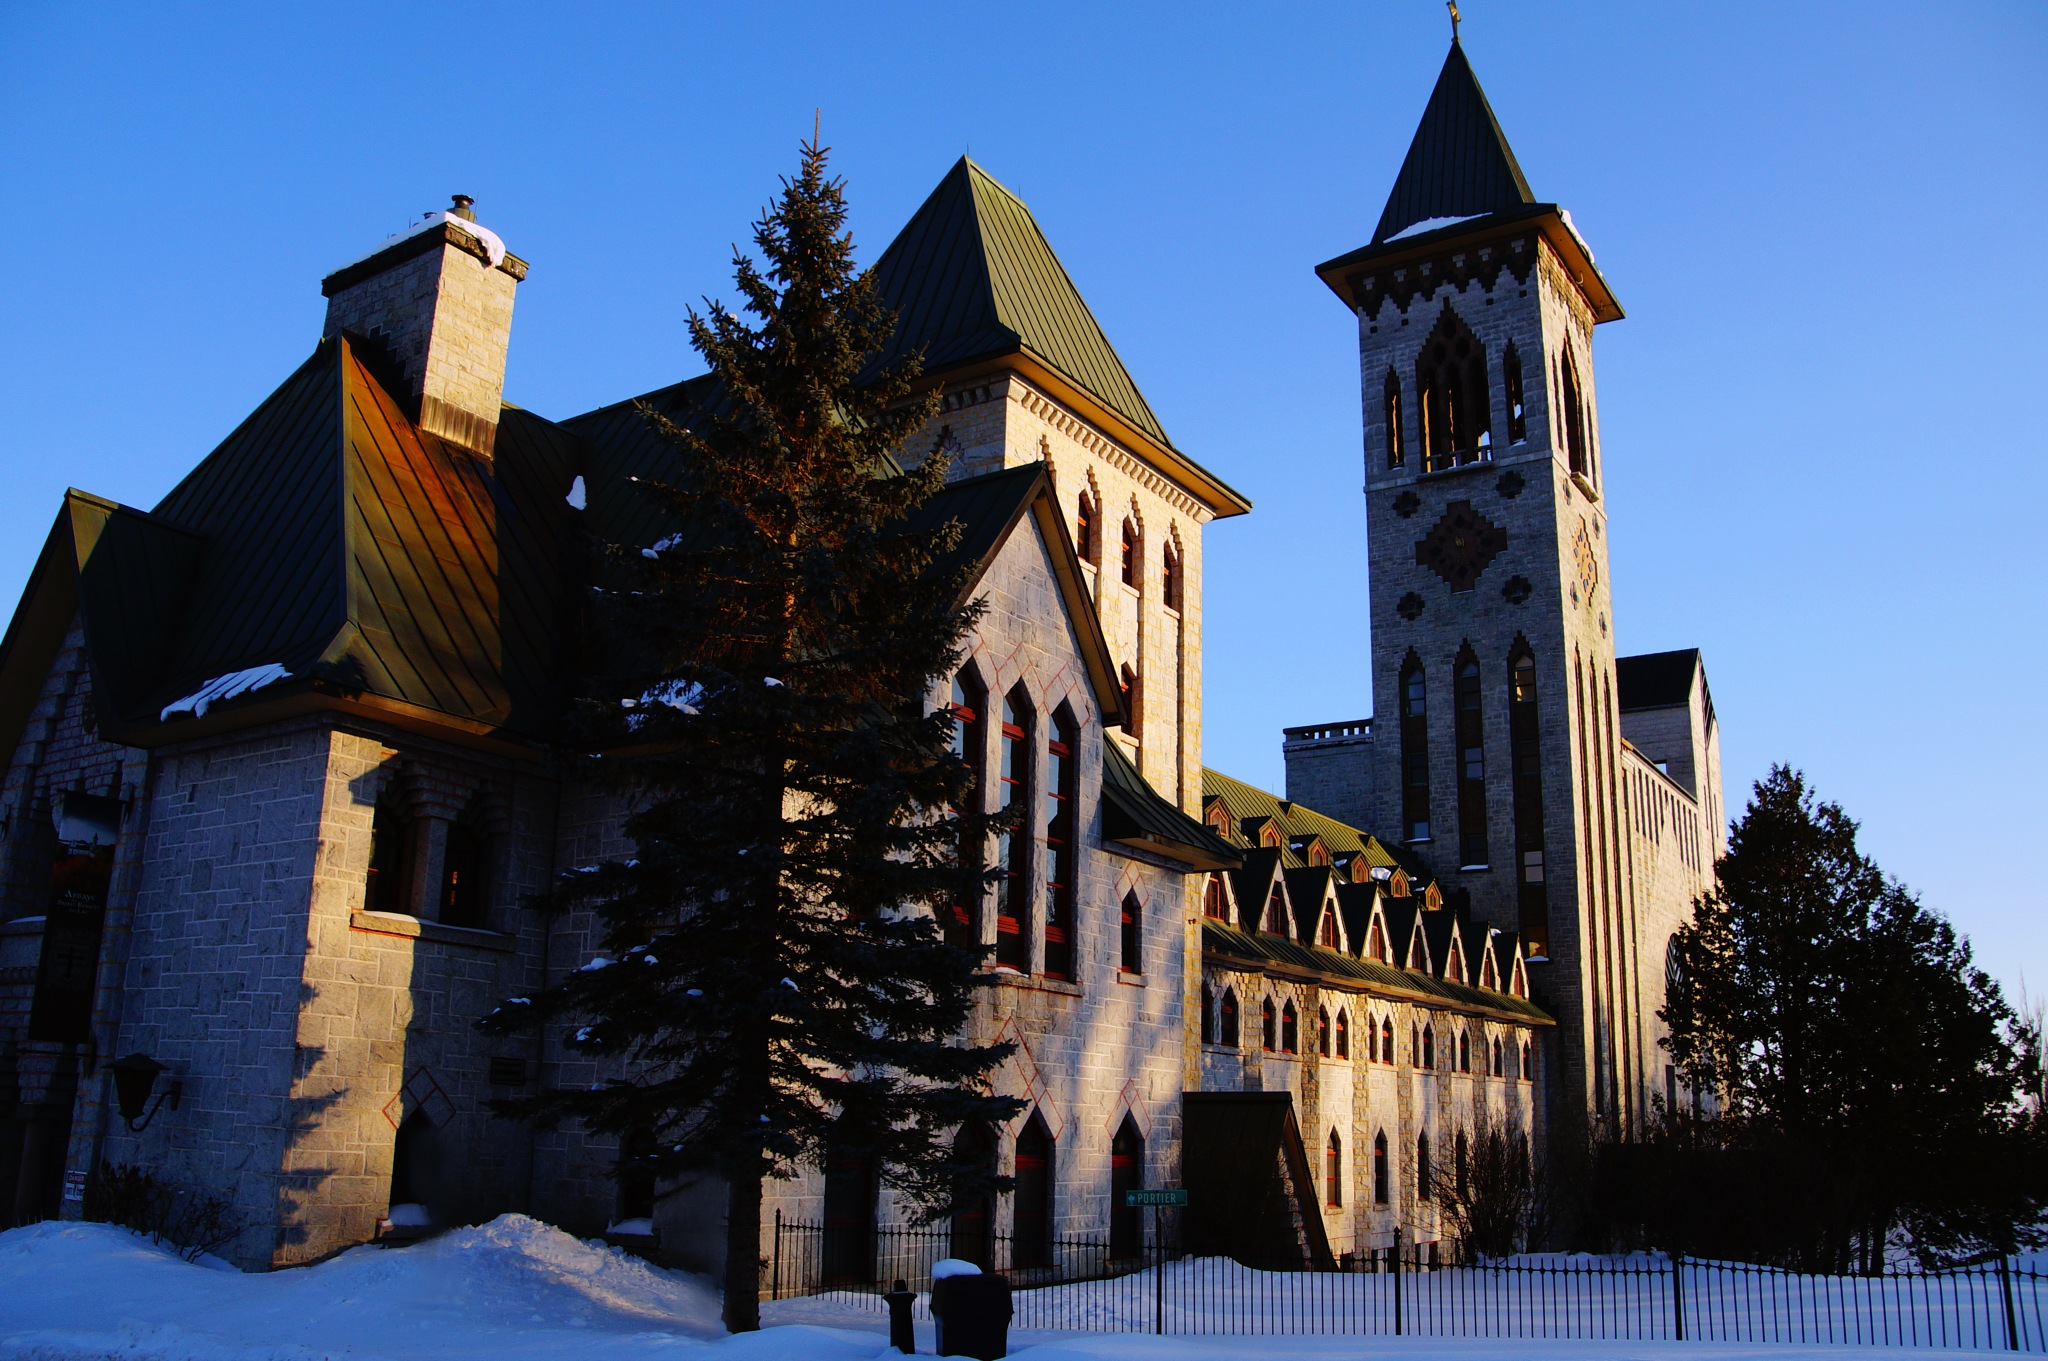 Abbaye by claire lafontaine